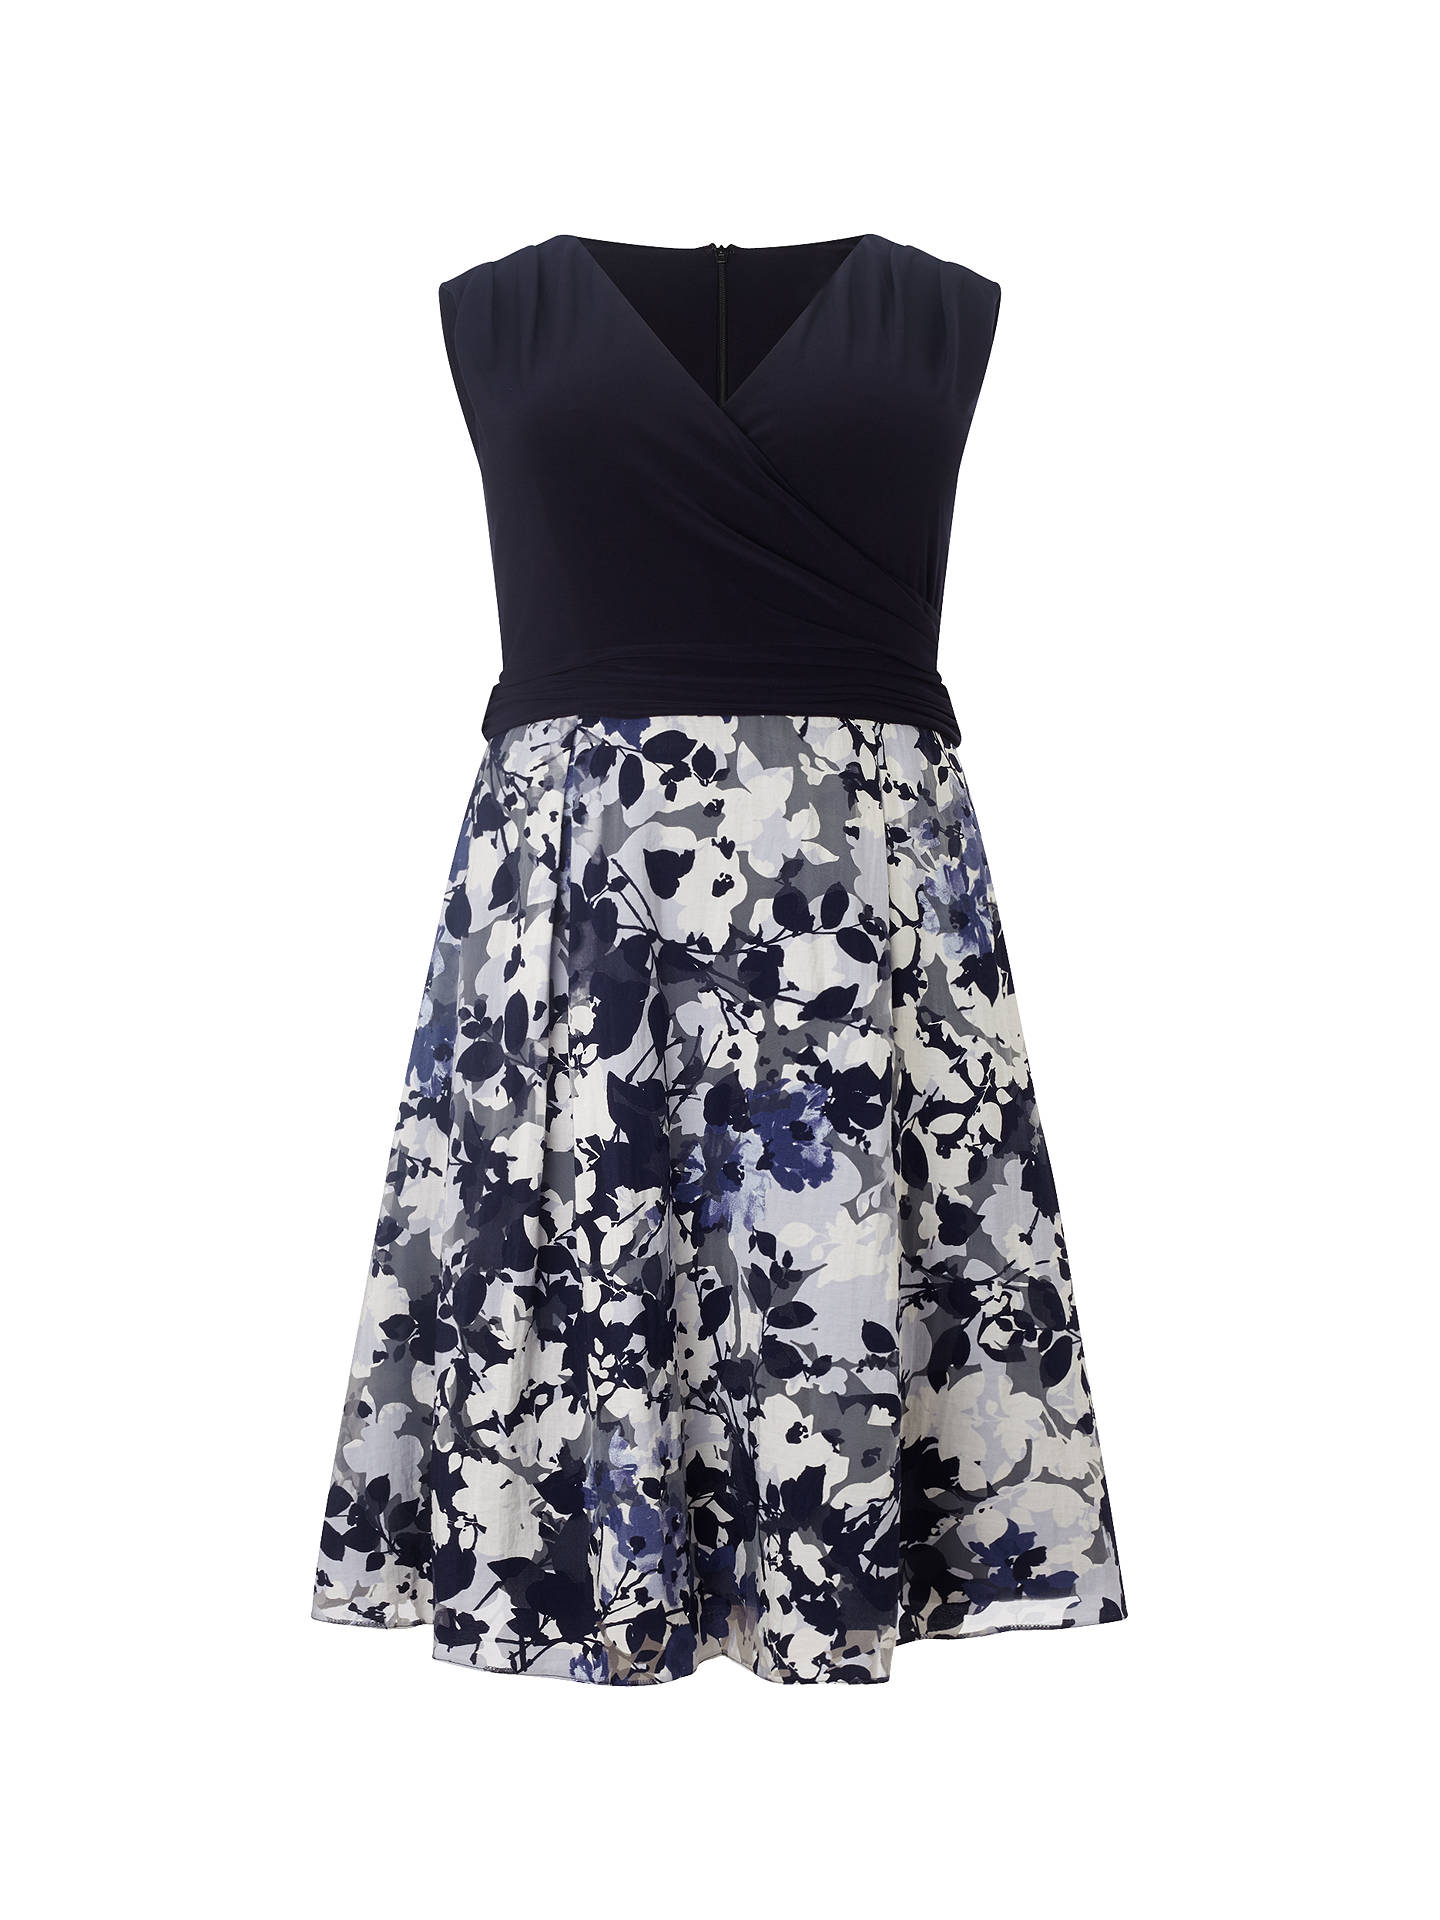 BuyStudio 8 Jessy Dress, Navy/Multi, 16 Online at johnlewis.com